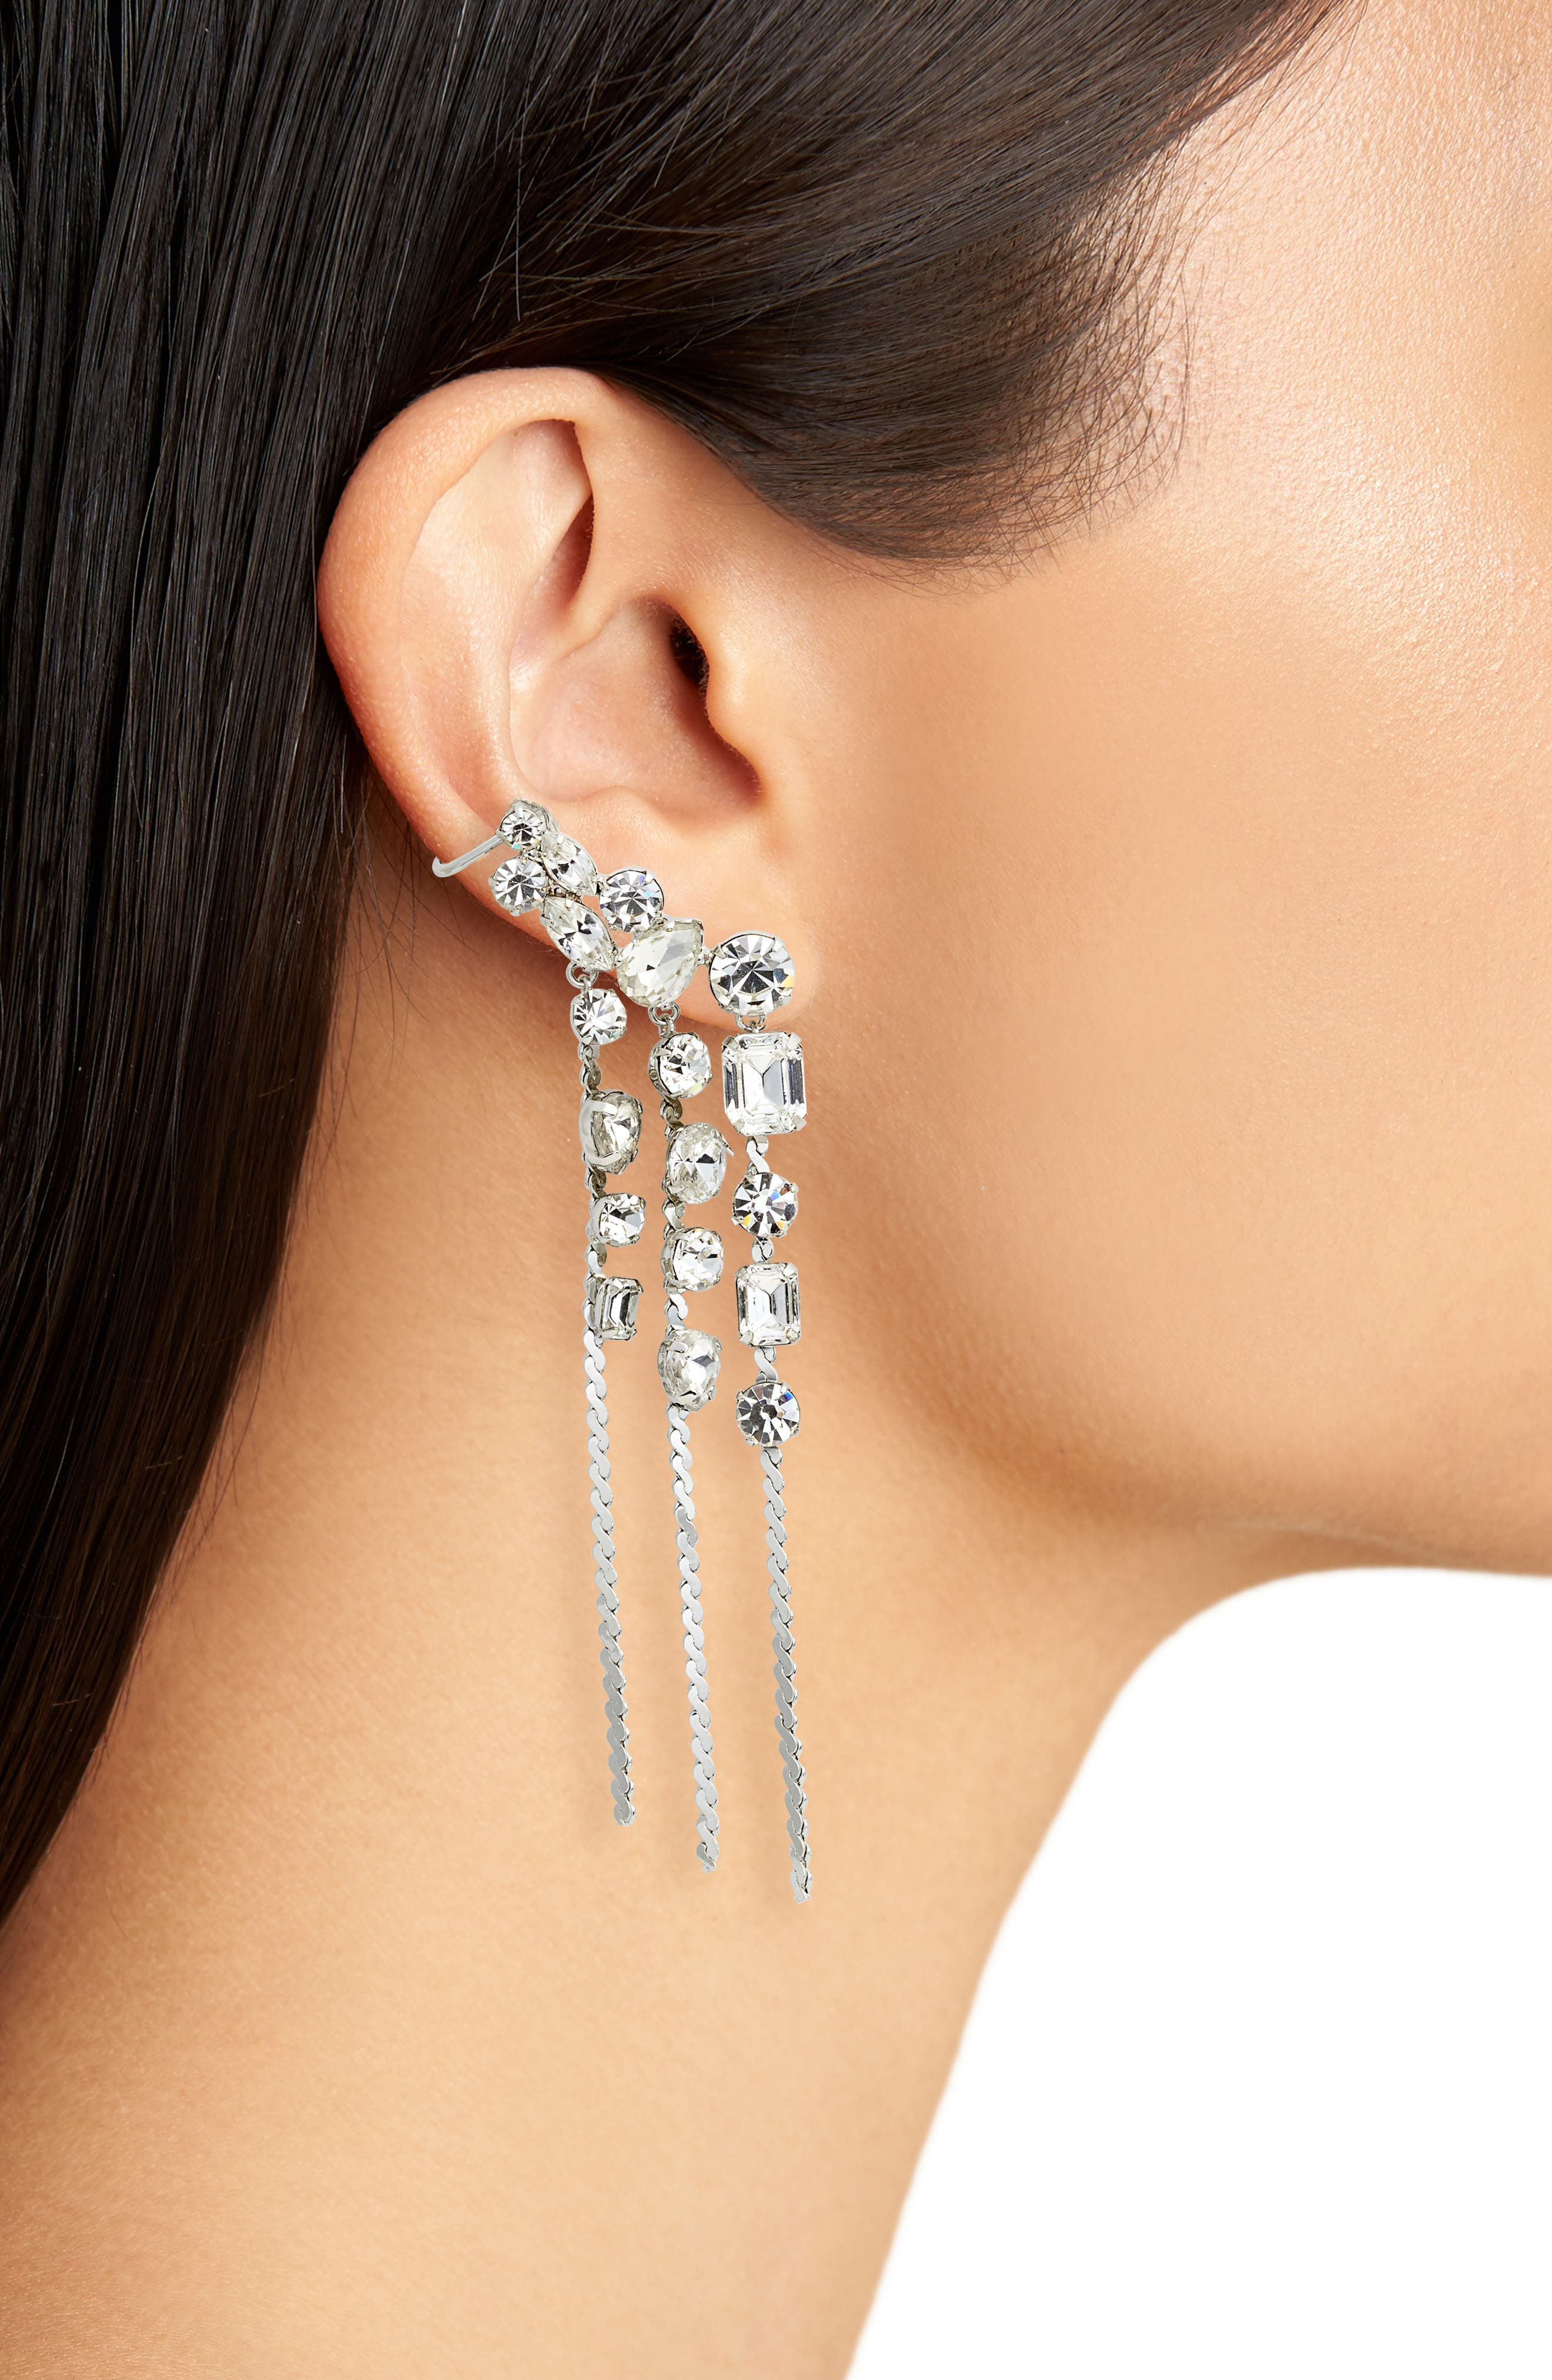 Crystal Ear Crawlers,                             Alternate thumbnail 2, color,                             Clear/ Silver